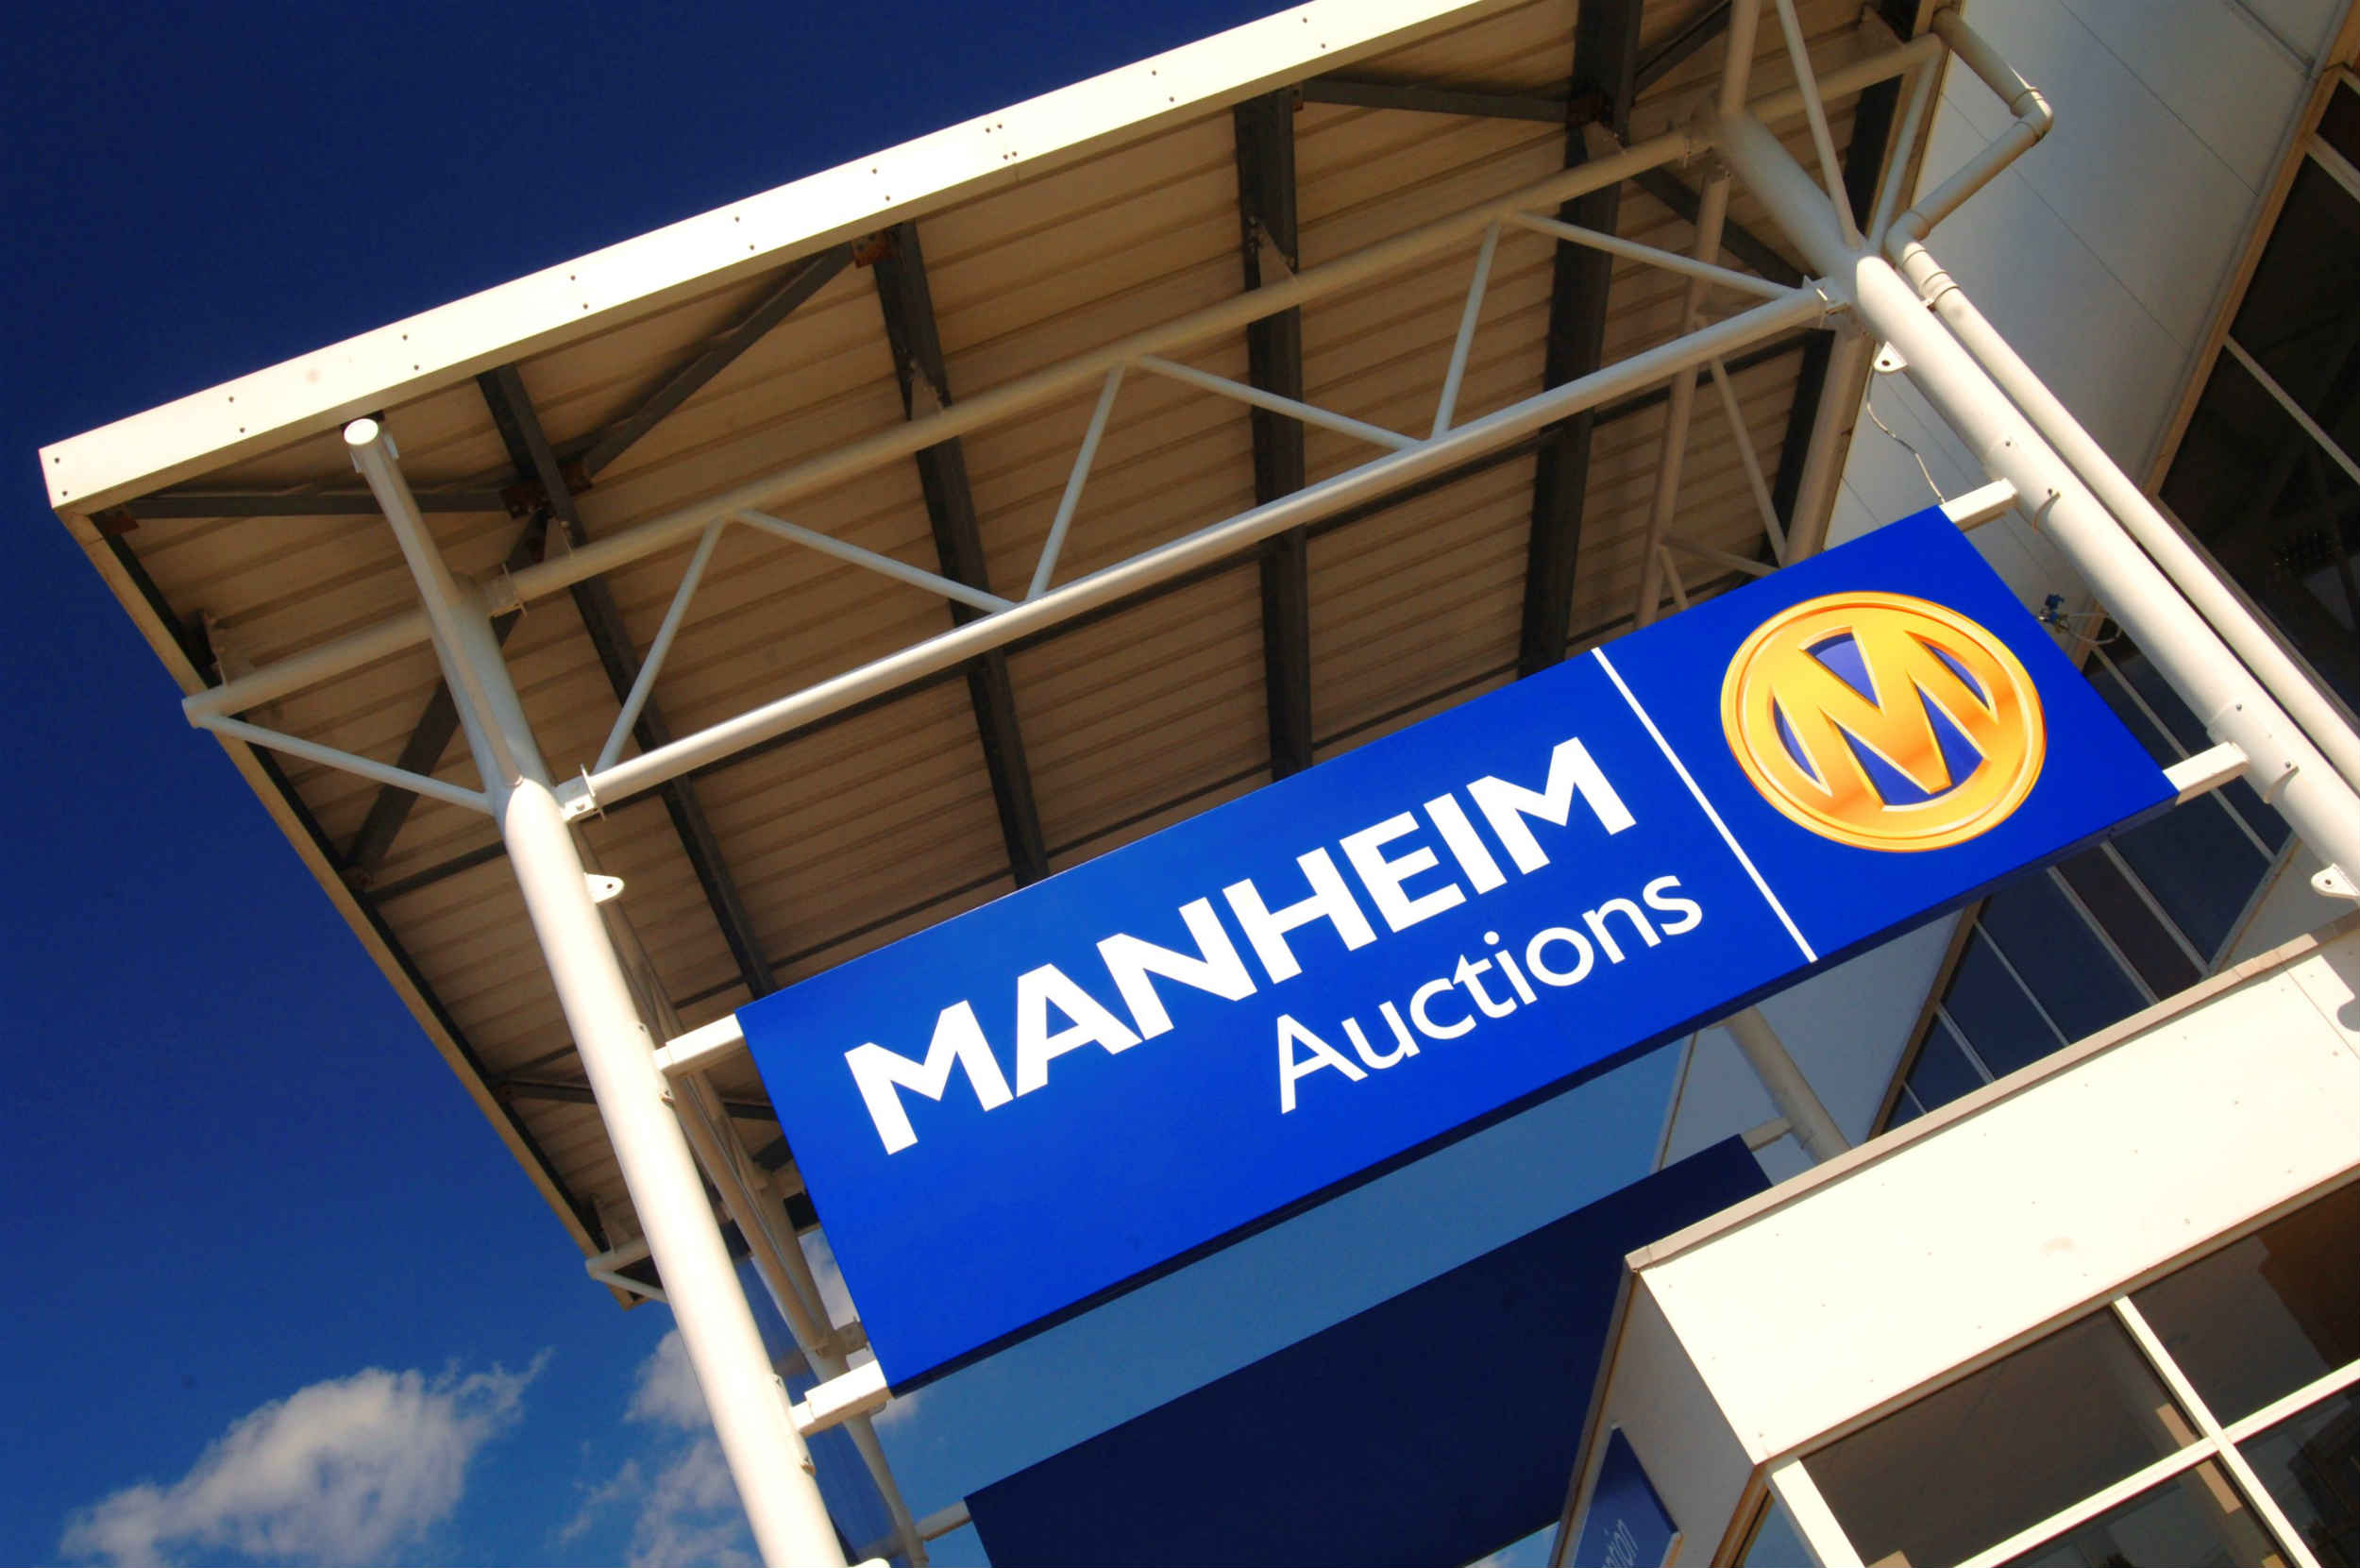 Outside of a Manheim auction centre